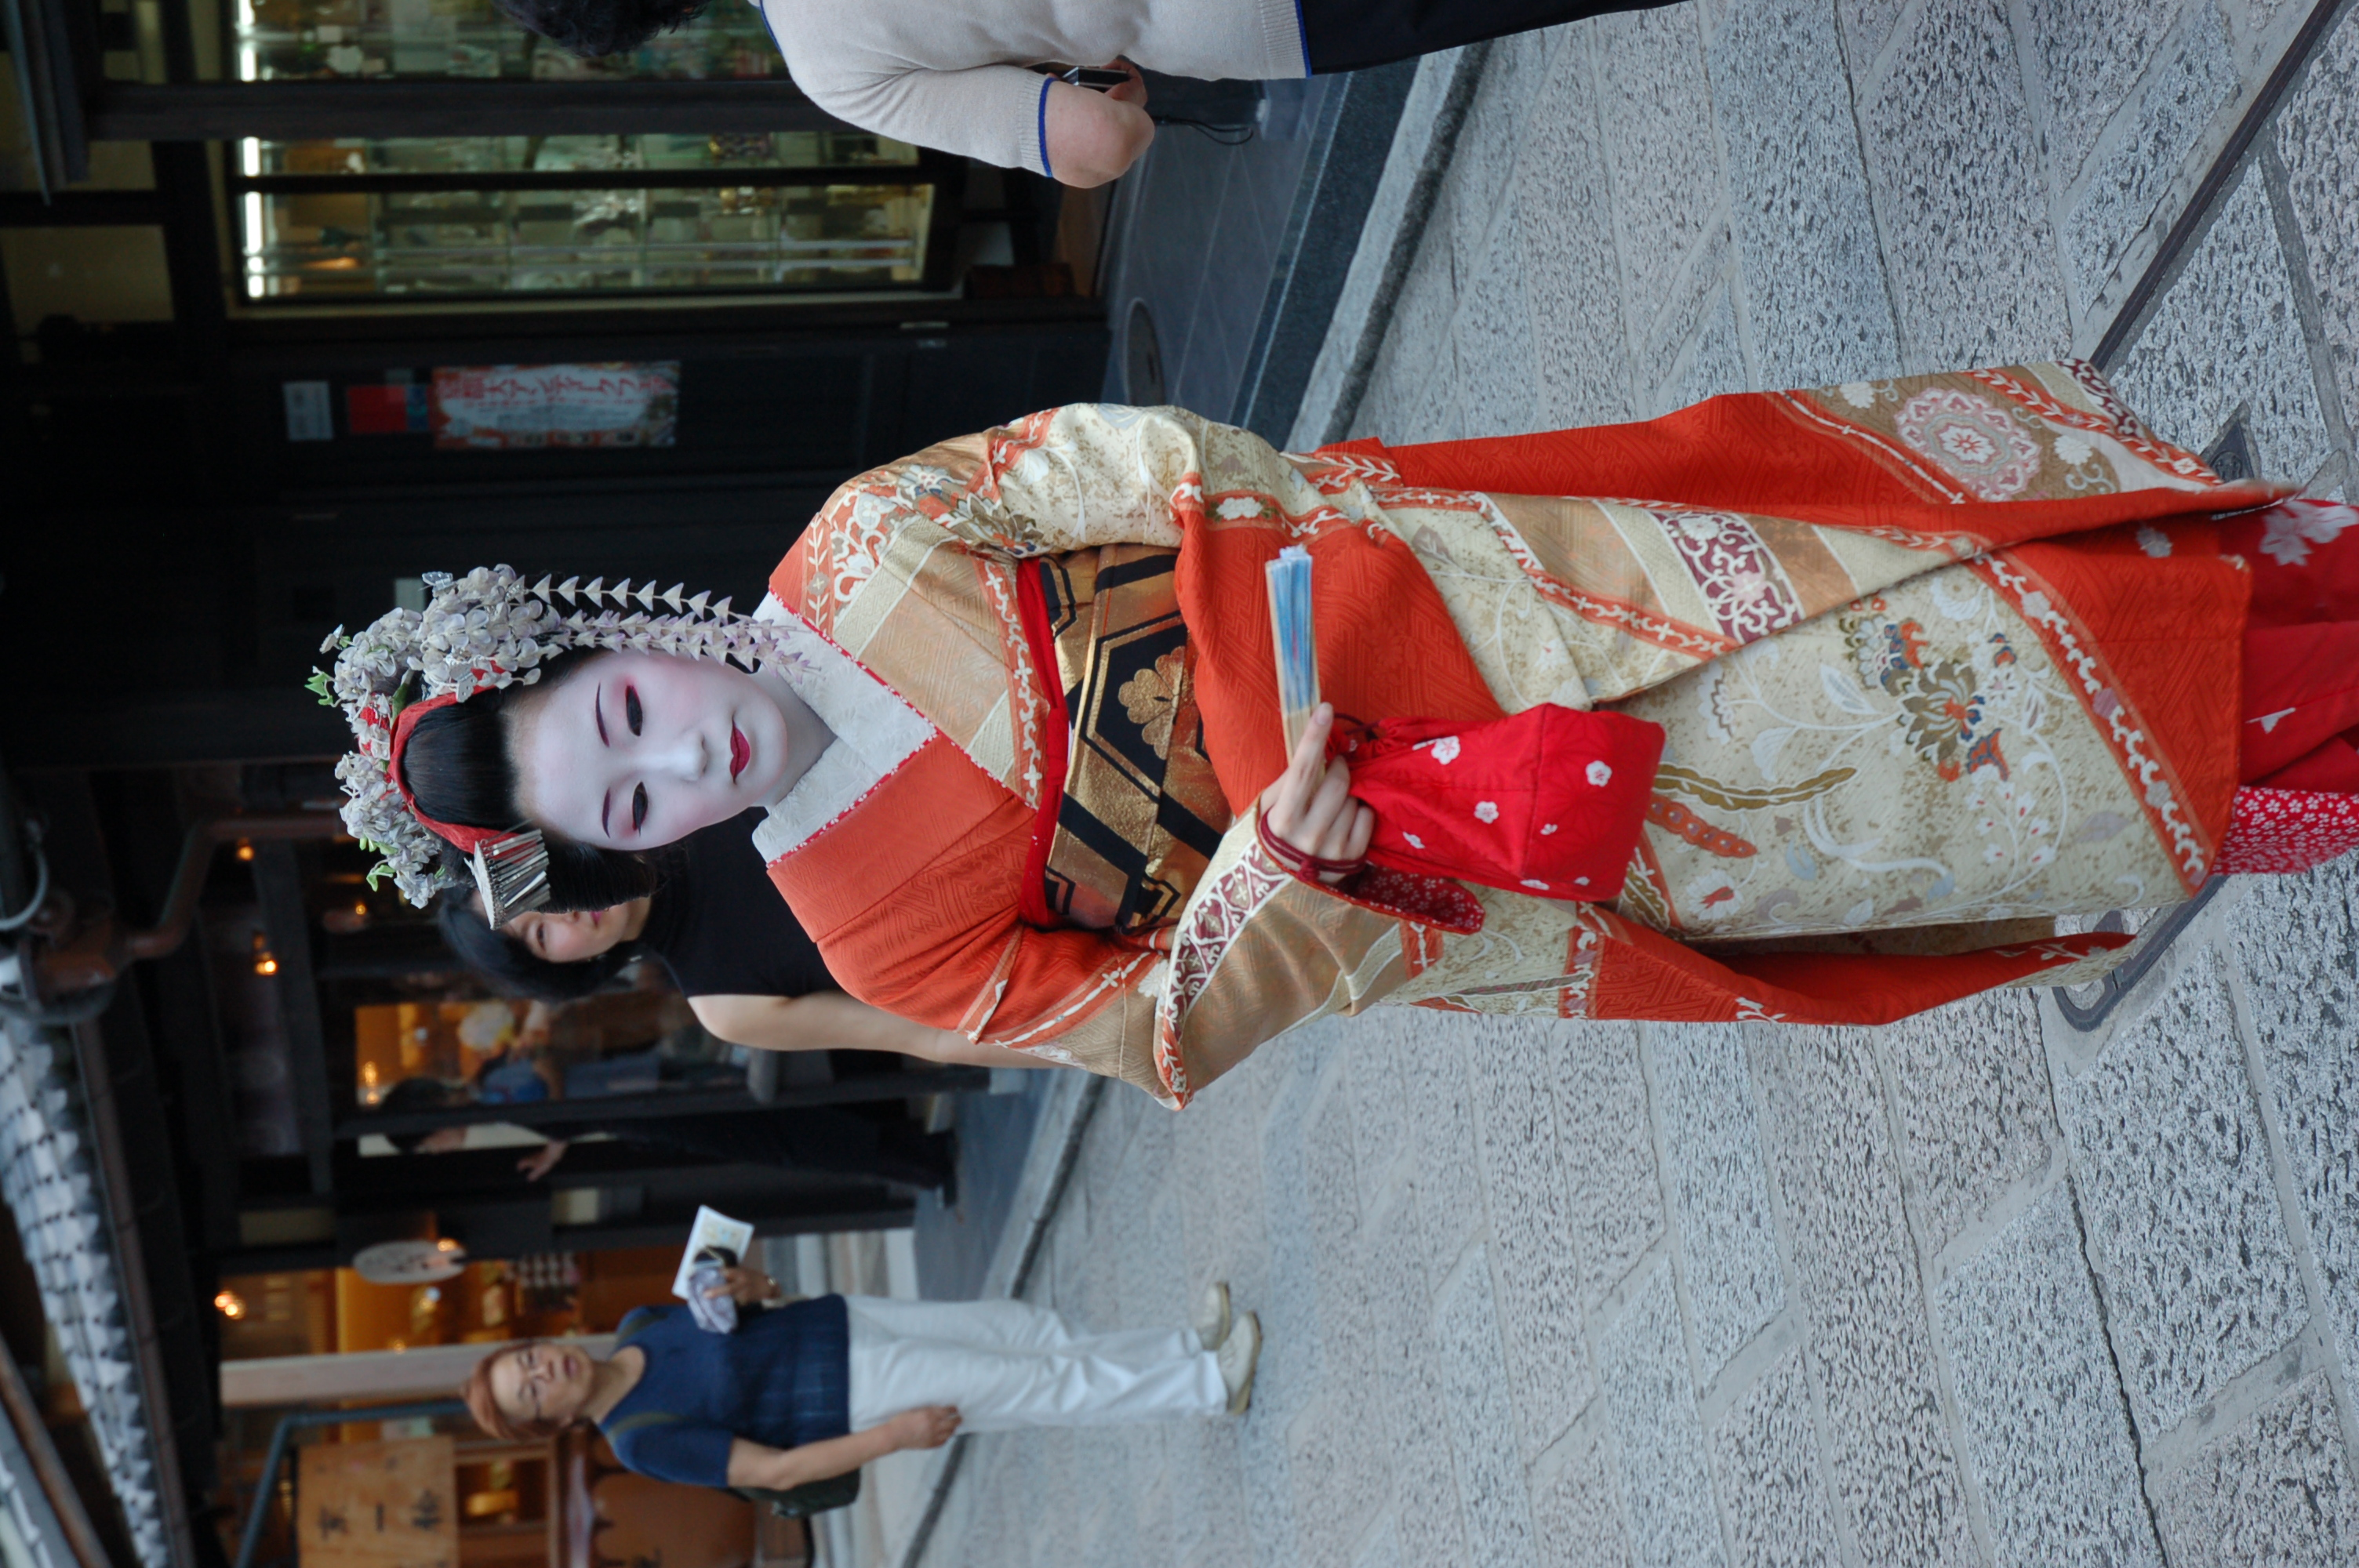 On the street up to Kiyomizu-dera, spotted another 'geisha'. In the daytime, it's most likely a model not a geisha or maiko.